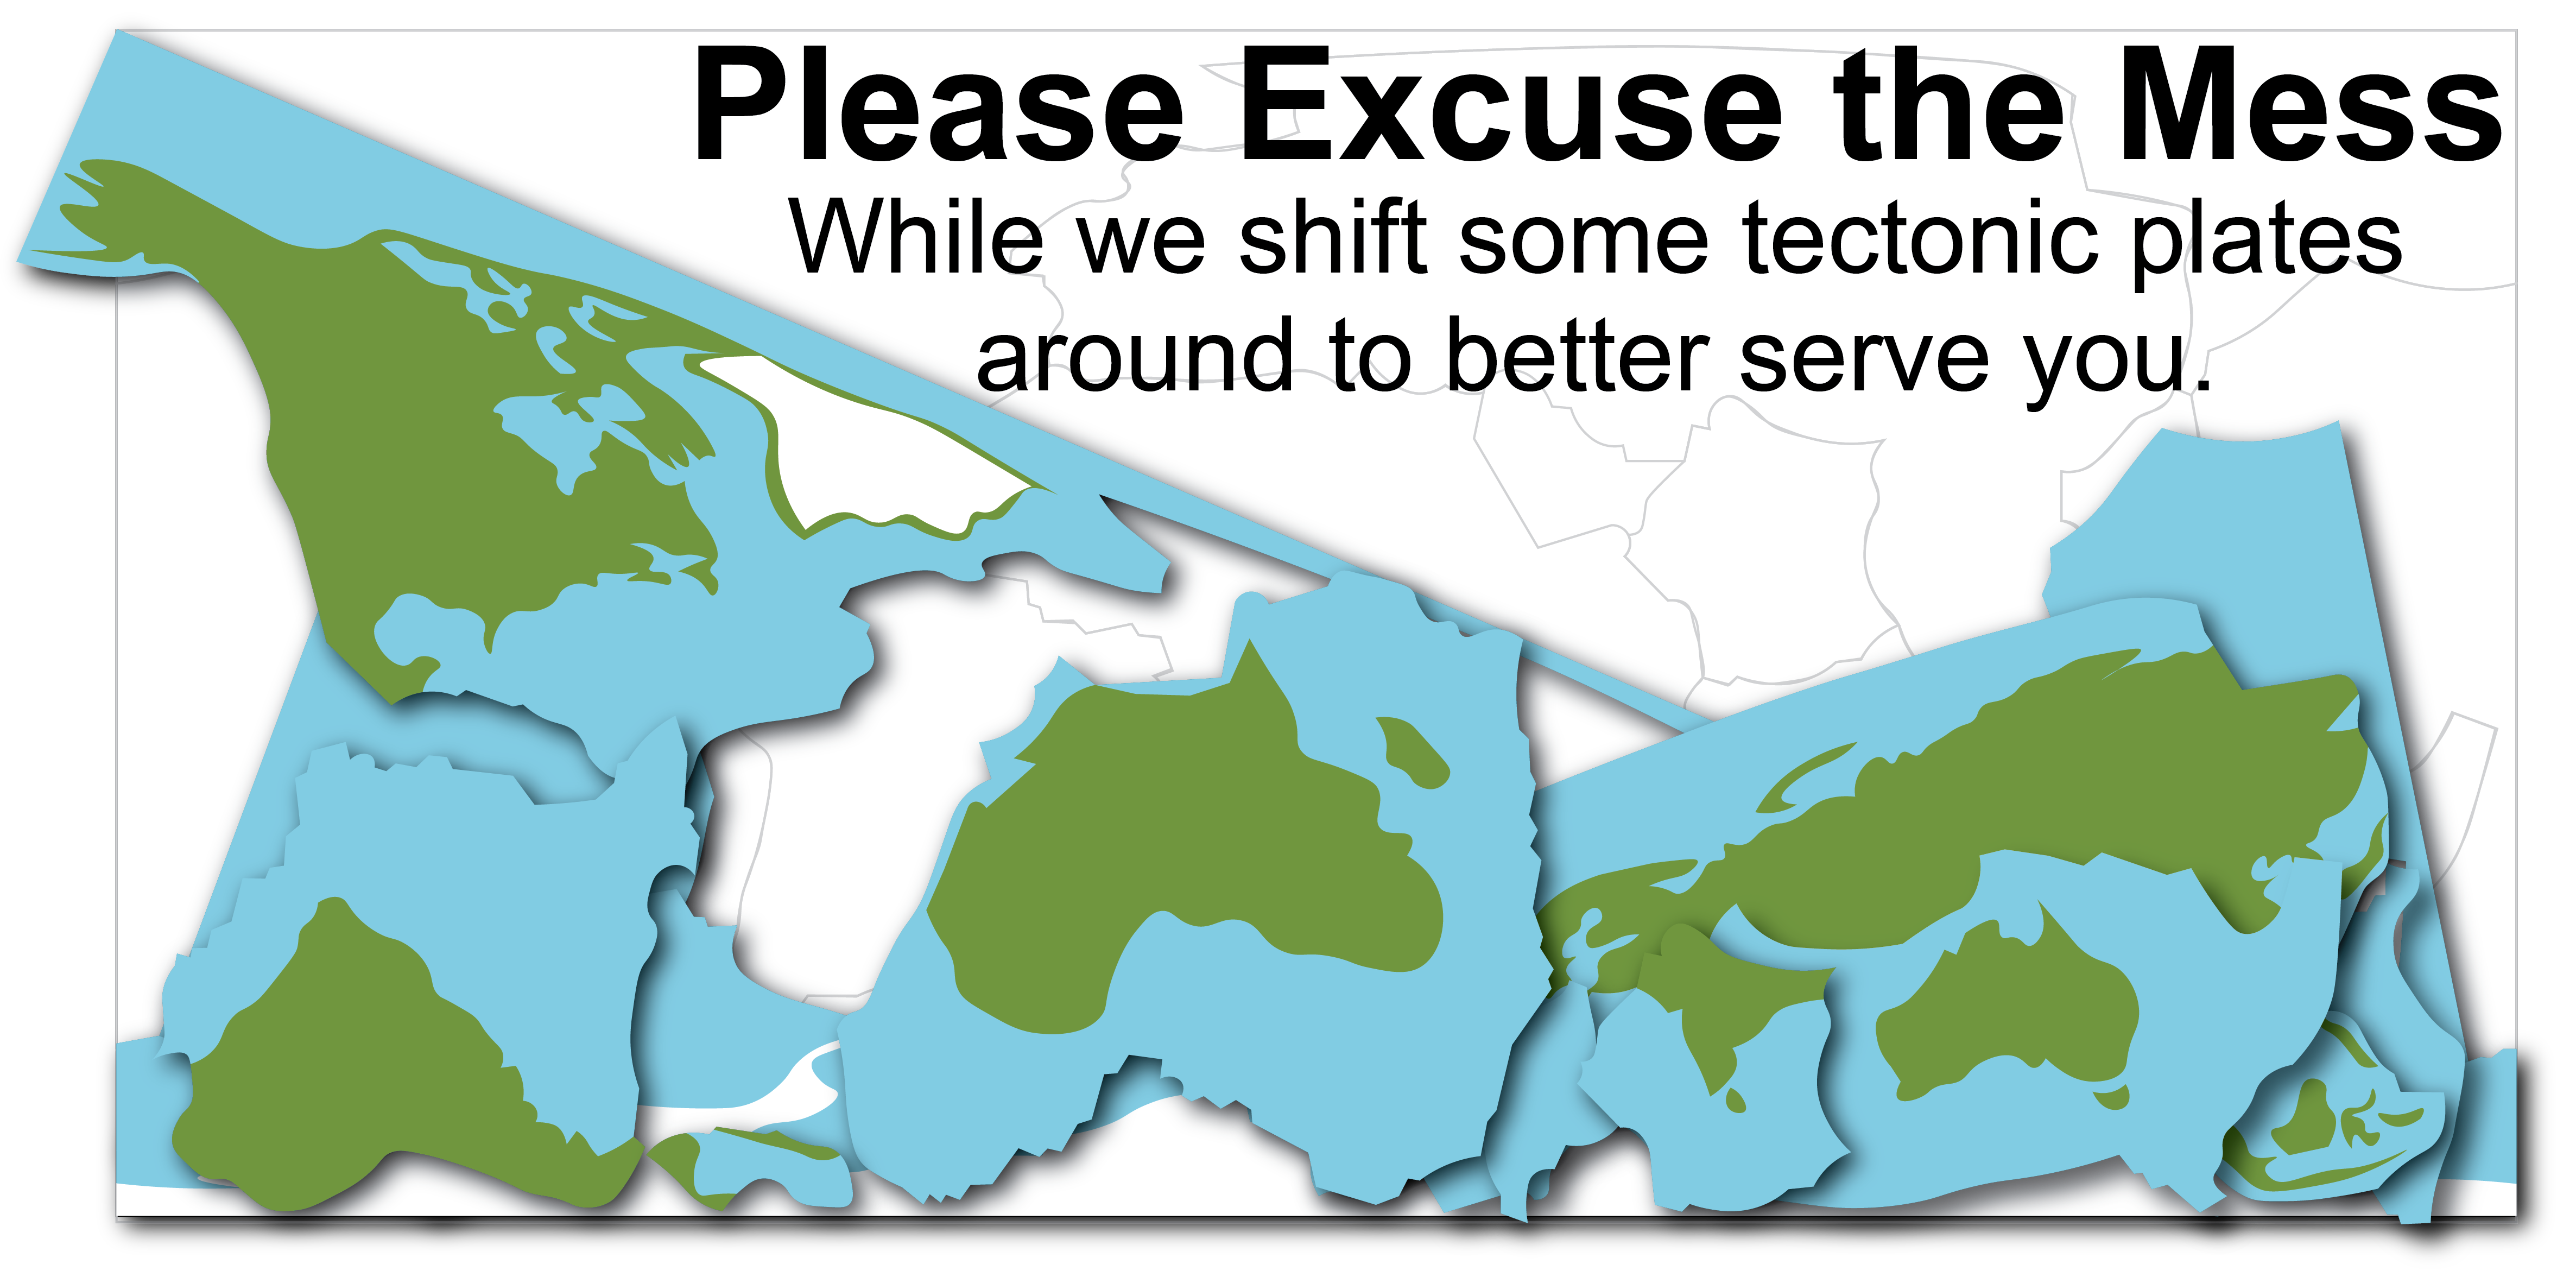 Please excuse the mess while we shift around some tectonic plates to better serve you.